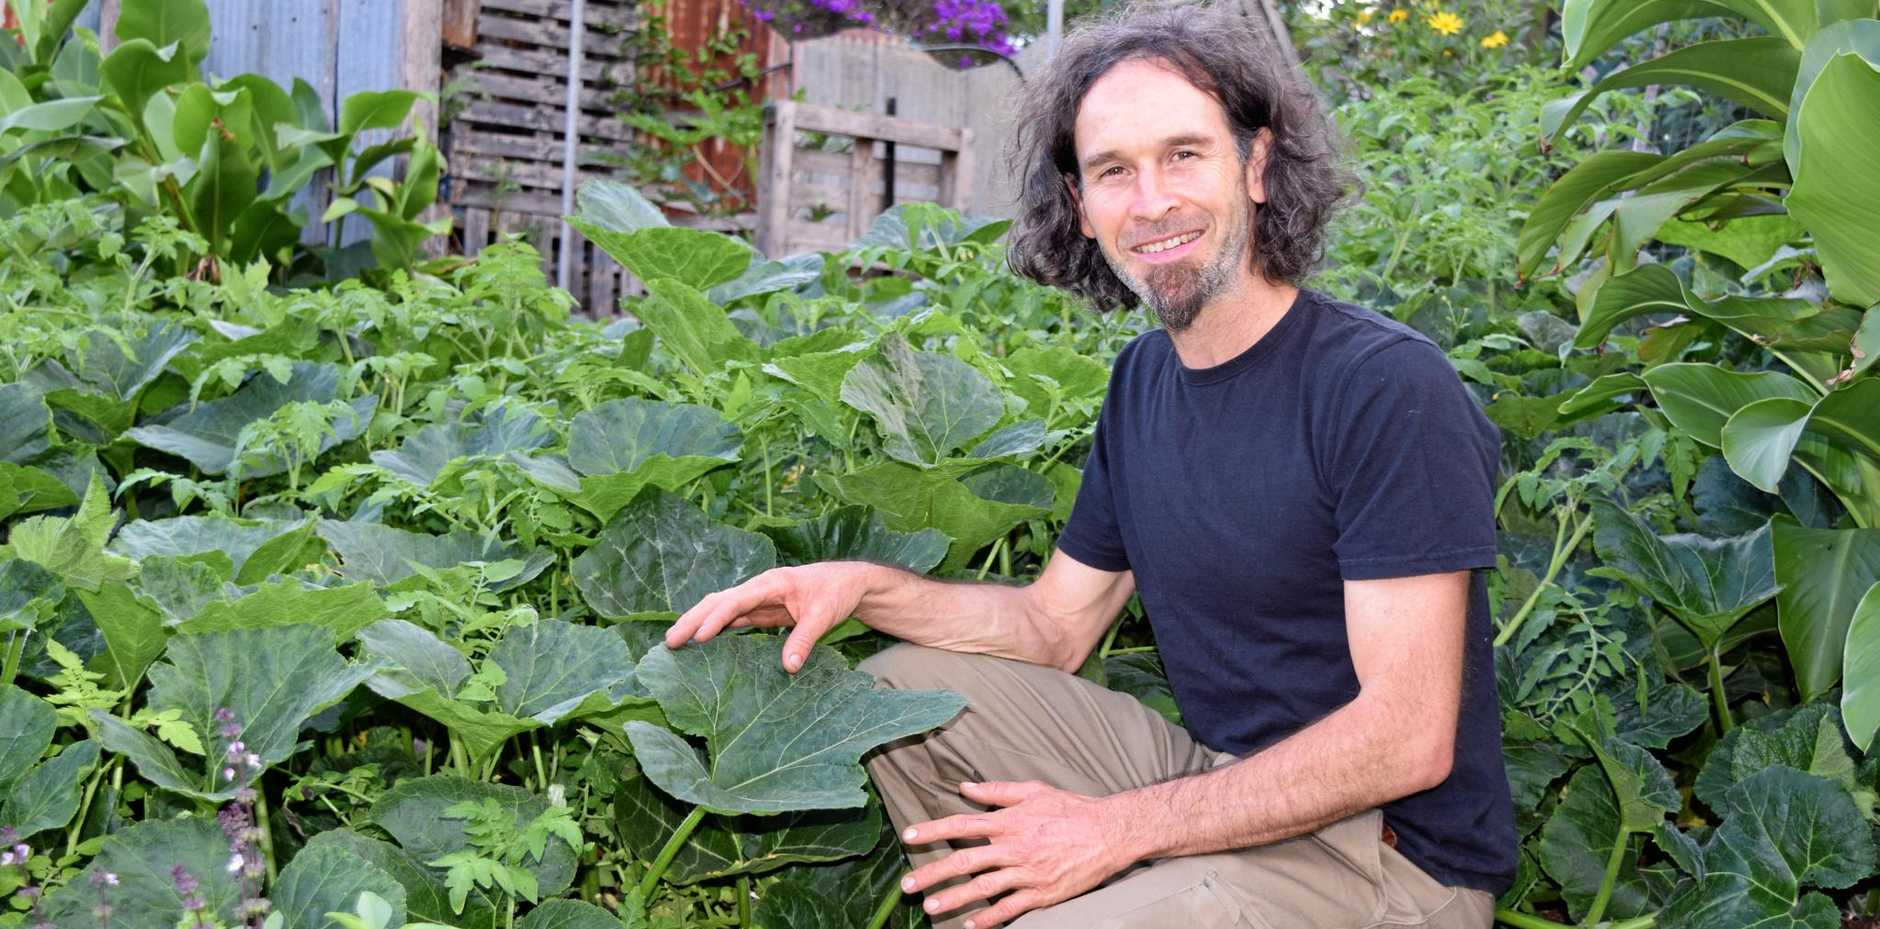 DOWN TO EARTH: Award-winning permaculturalist Dan Deighton explains the gardening movement permaculture.